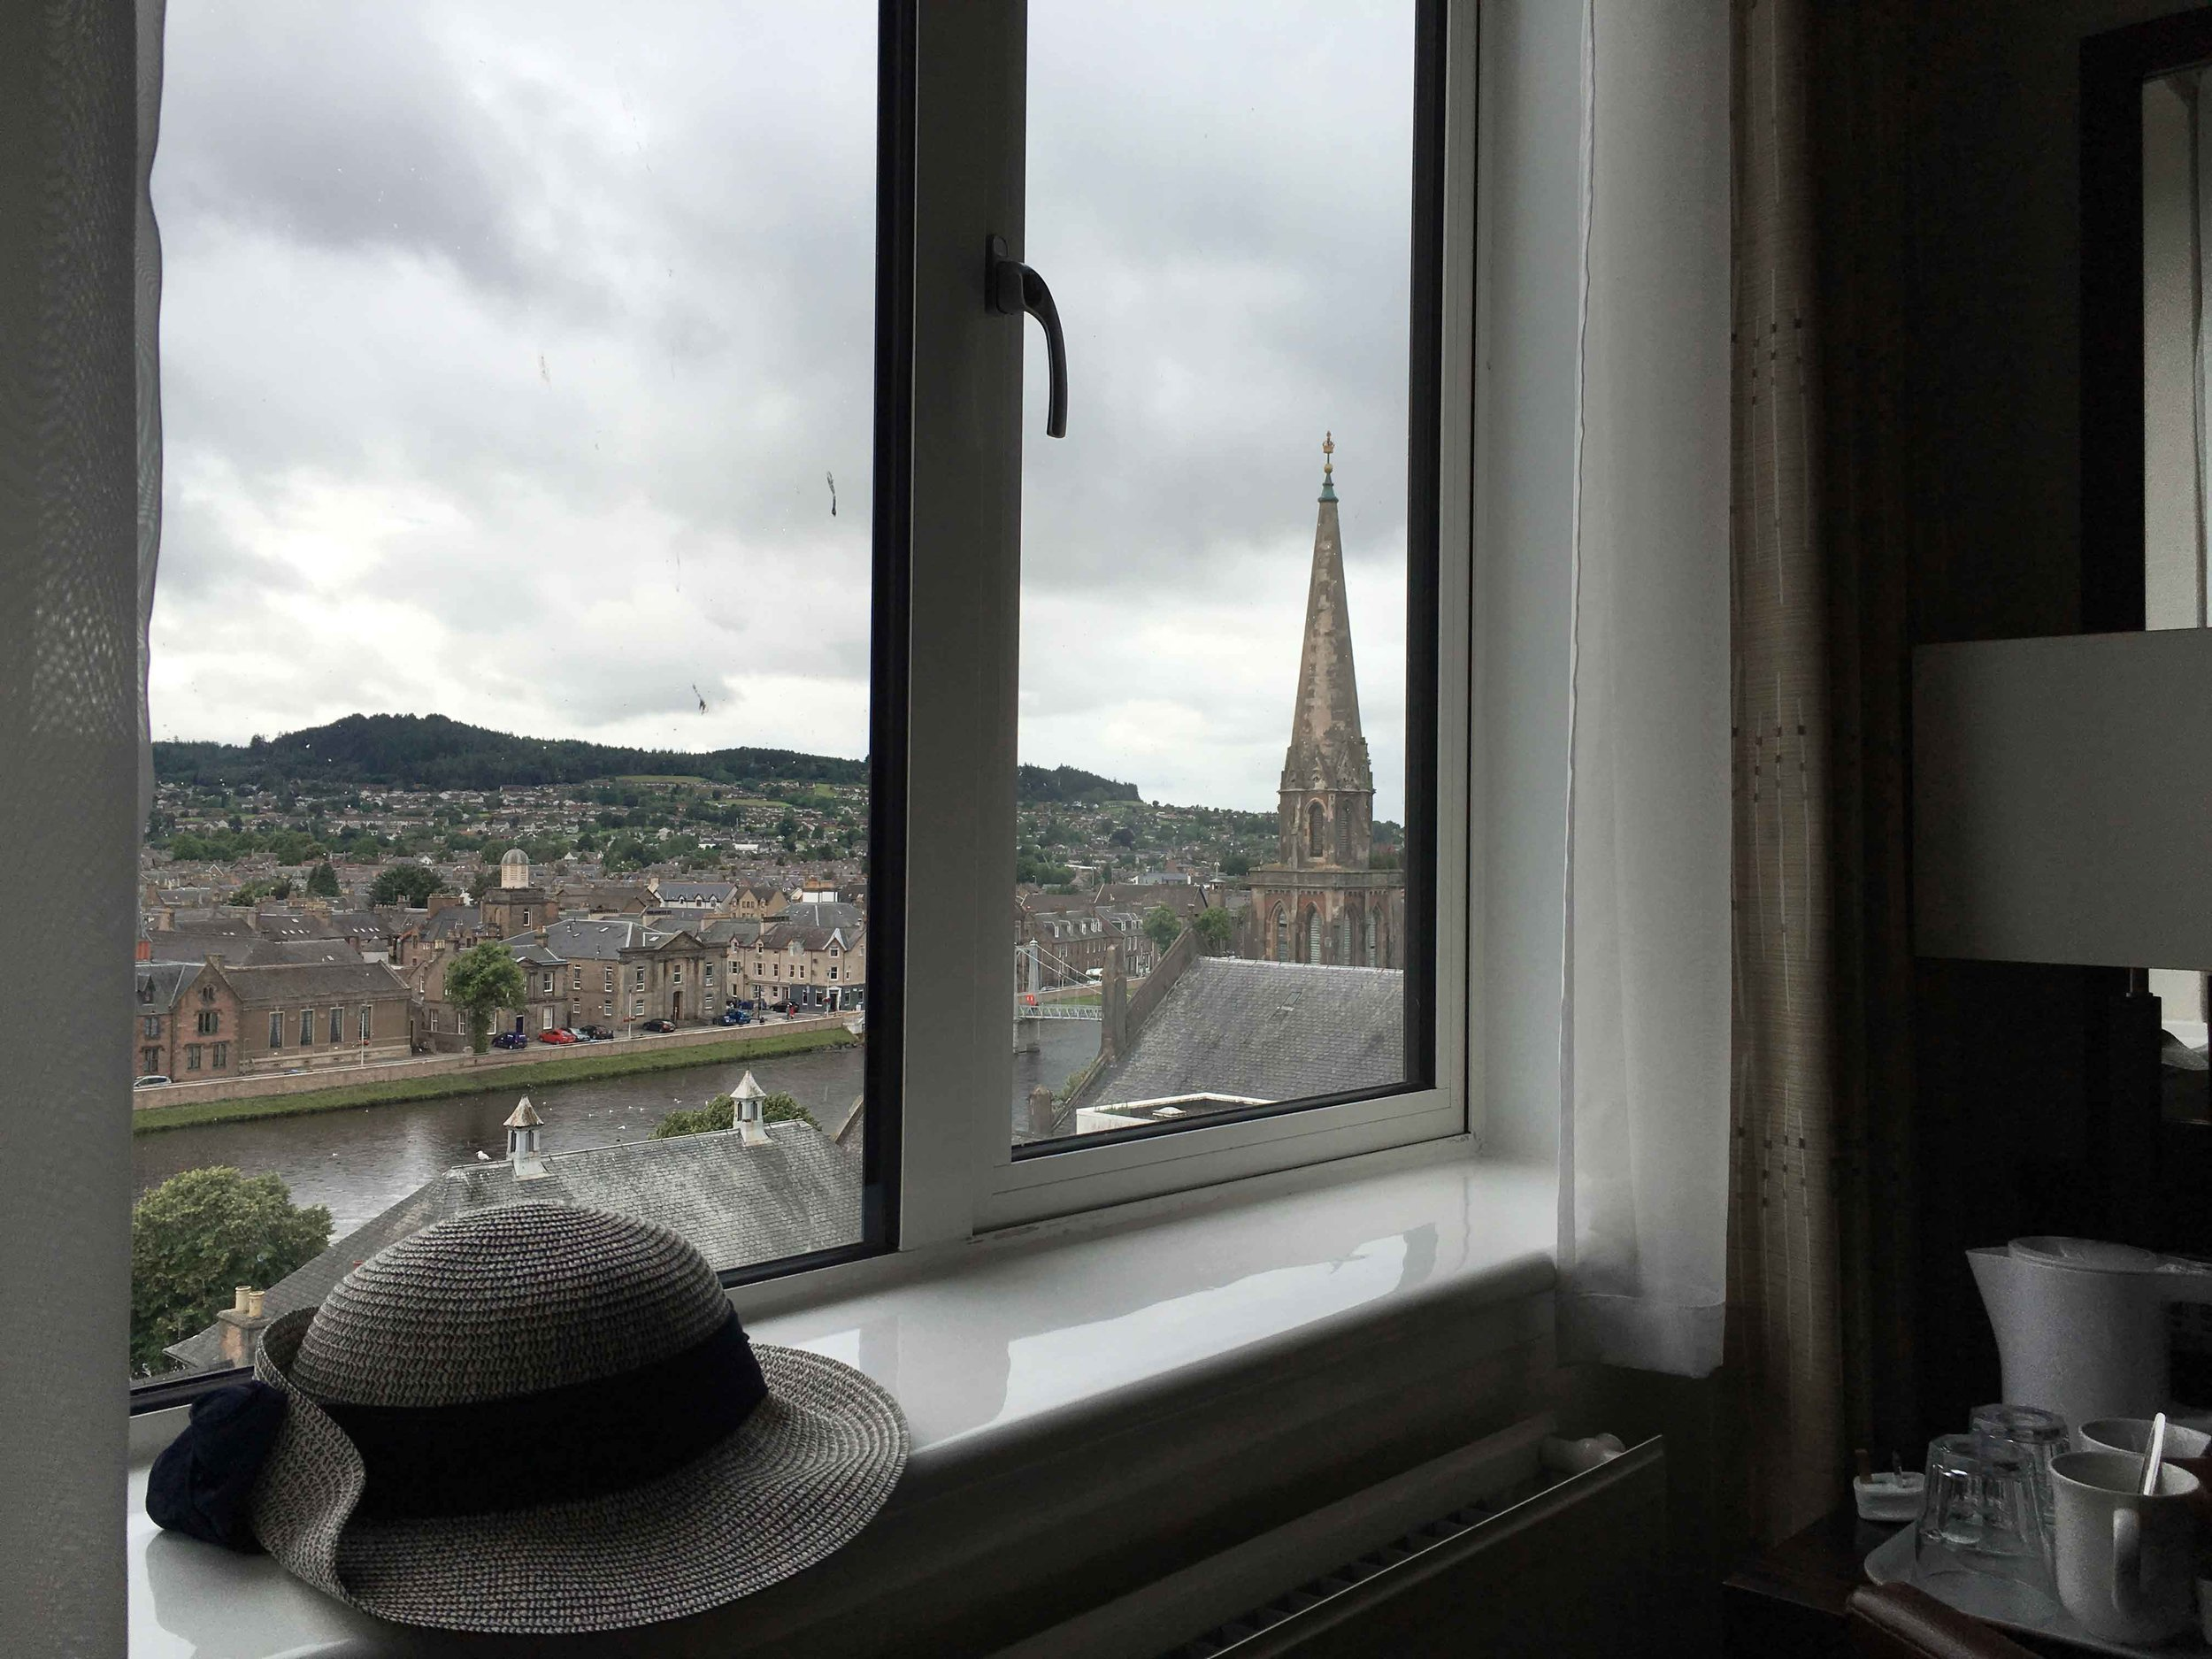 Mercure Inverness hotel, view of Old Town Inverness from my room window, Inverness, Scotland. Image©sourcingstyle.com